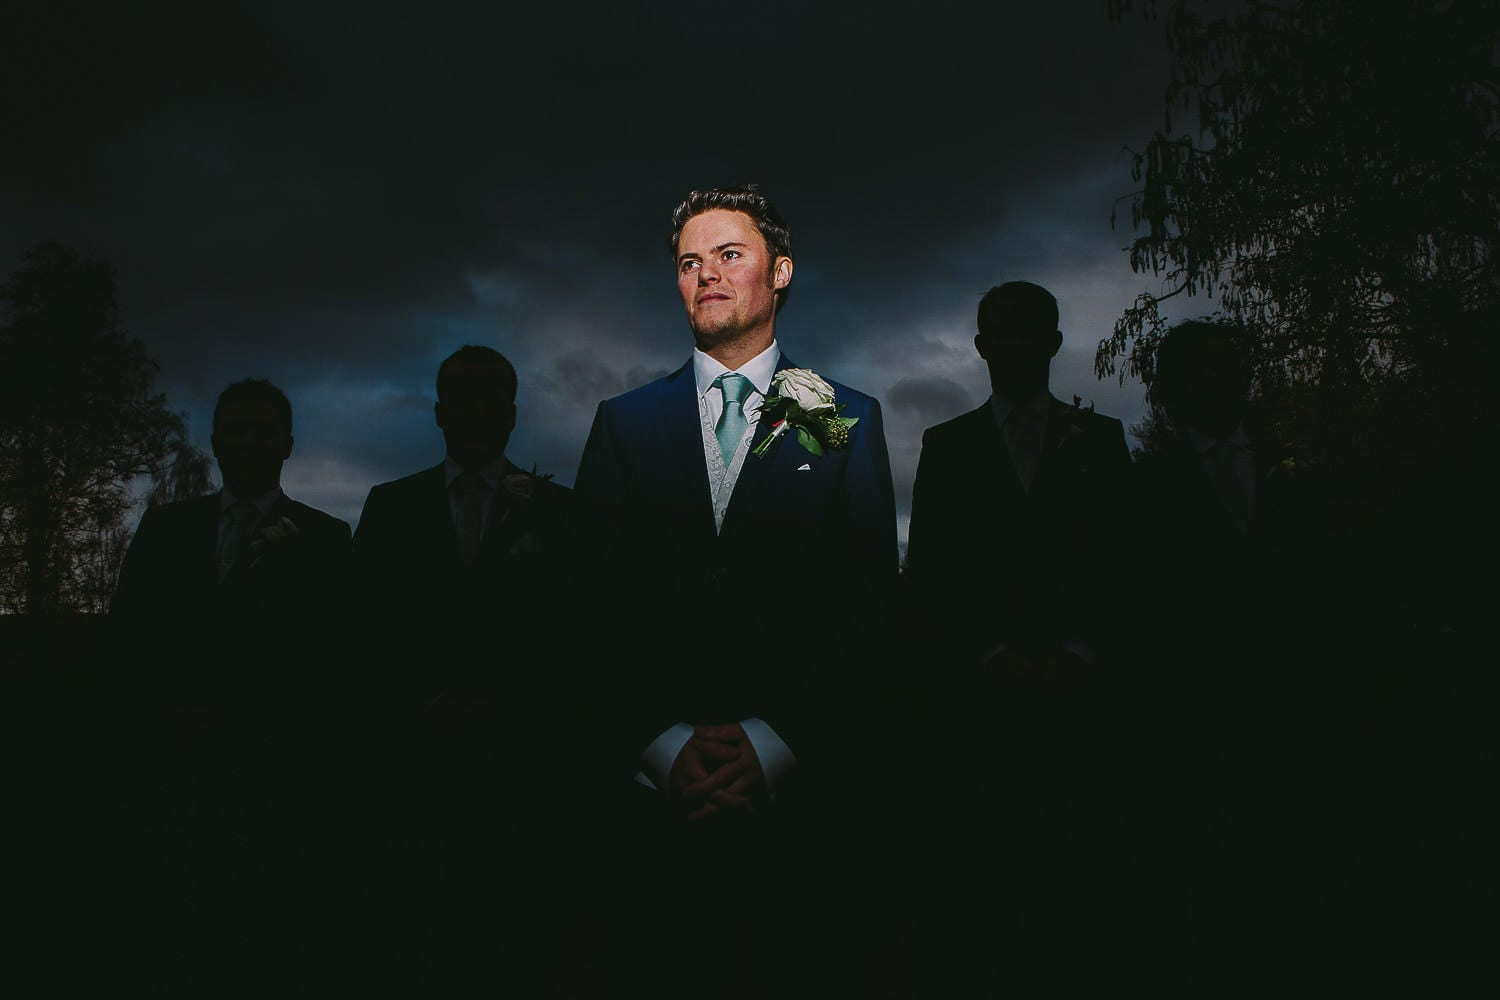 A portrait of the groom at Matara